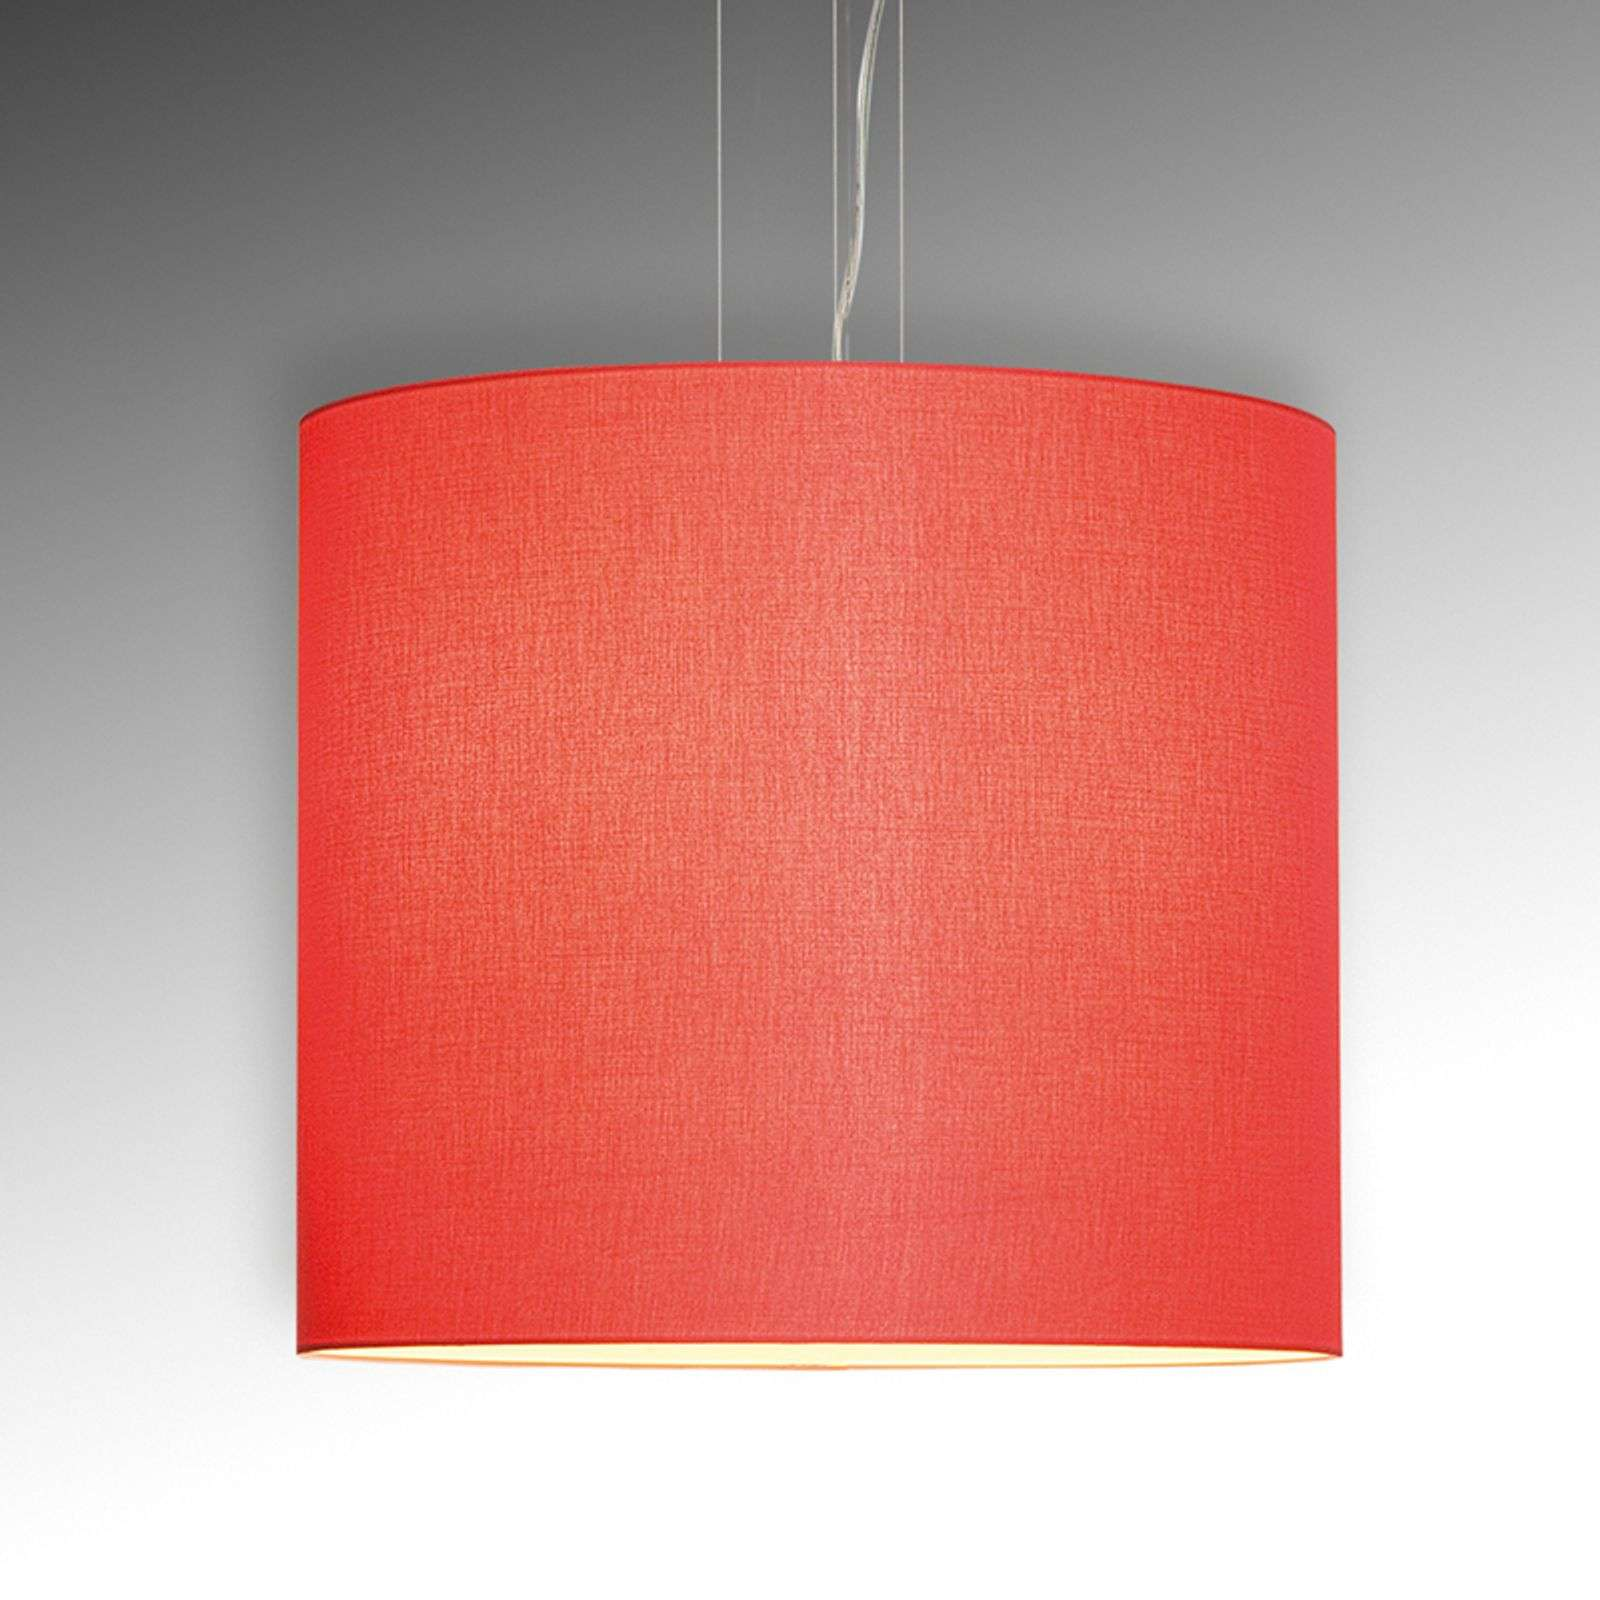 Suspension Tono profil fin rouge diamètre 60 cm